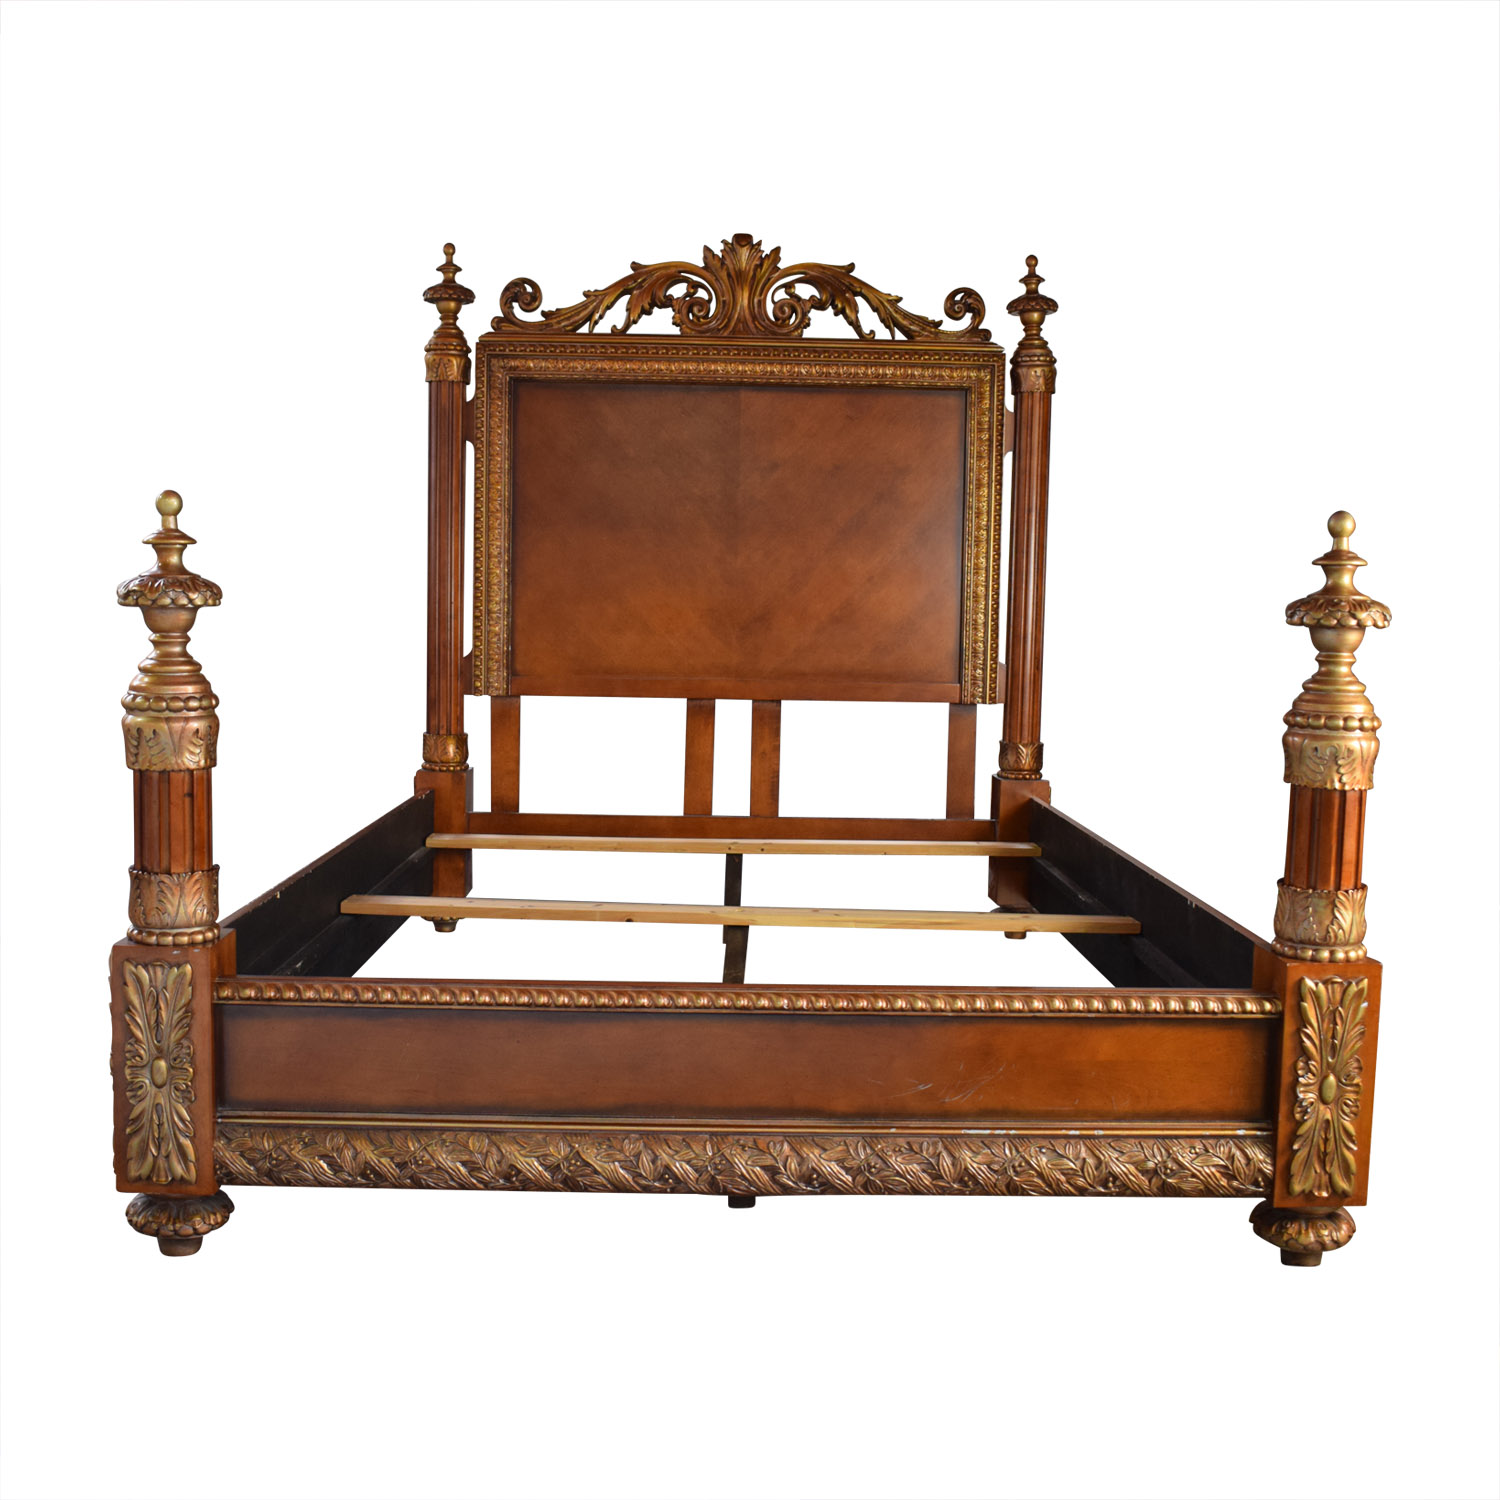 buy Horchow Horchow Carved Wood Semi-Four Poster Queen Bed Frame online